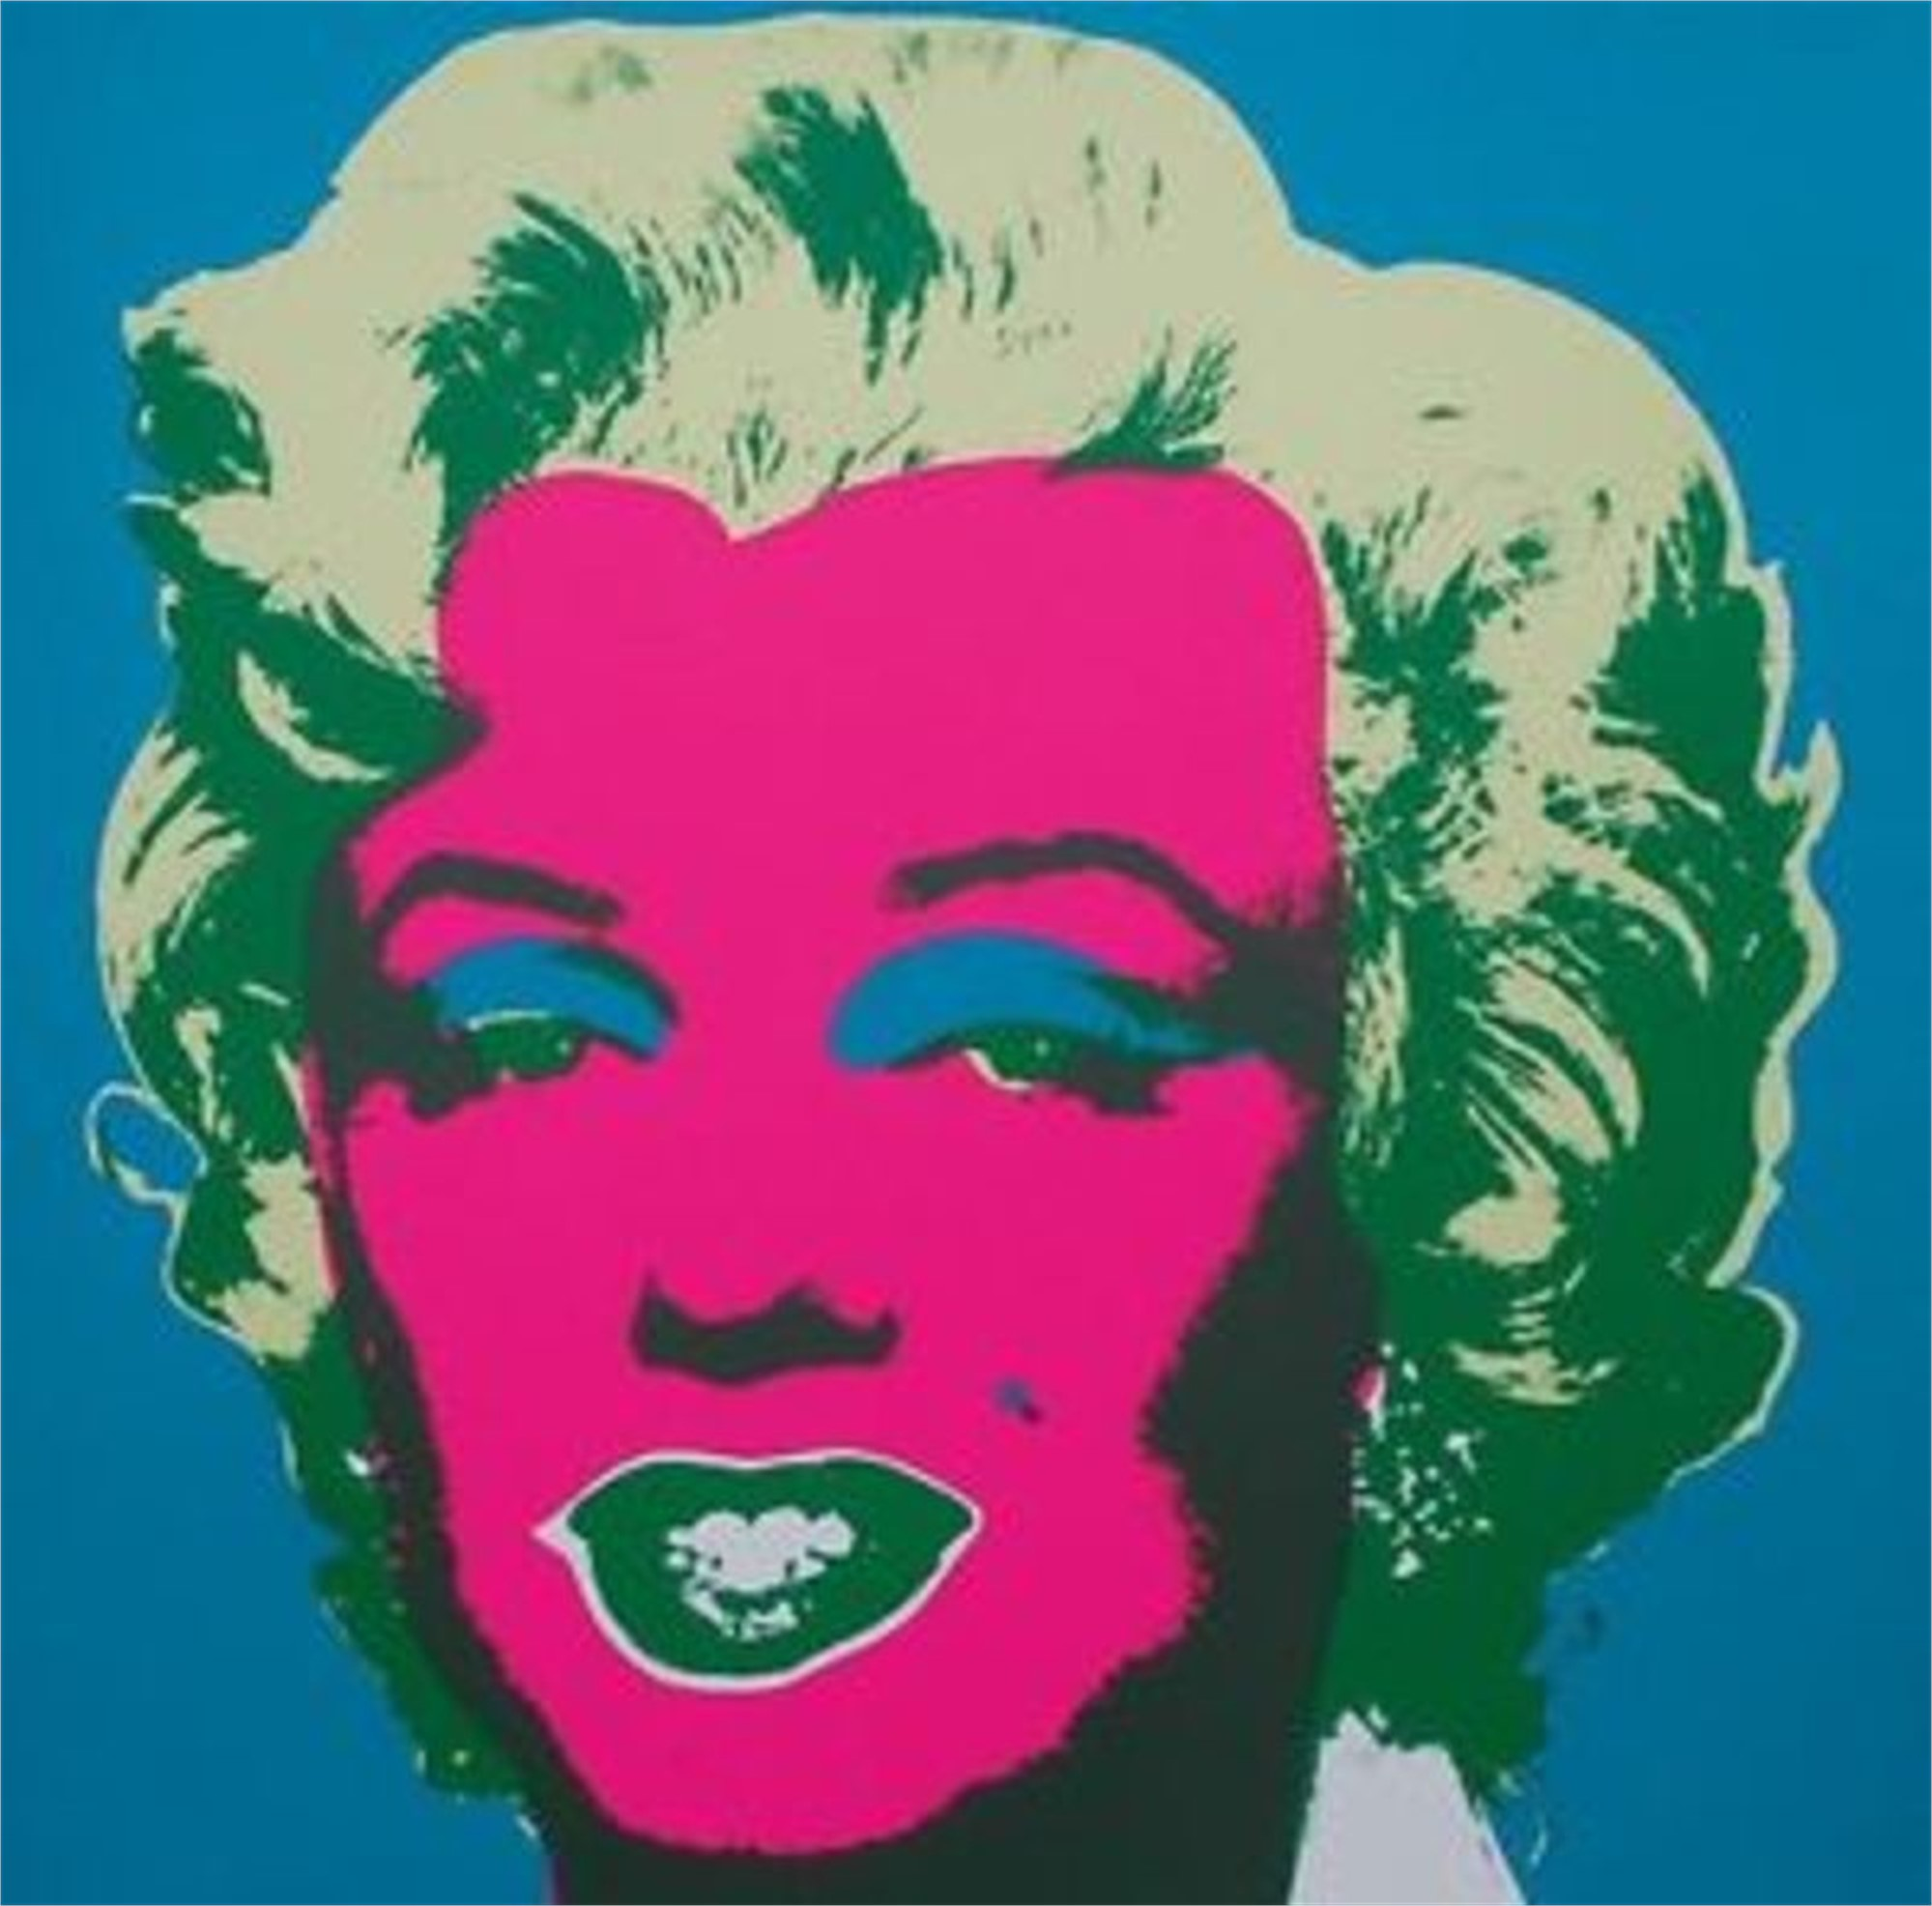 Marilyn 30 From the Sunday B. Morning Edition by Andy Warhol